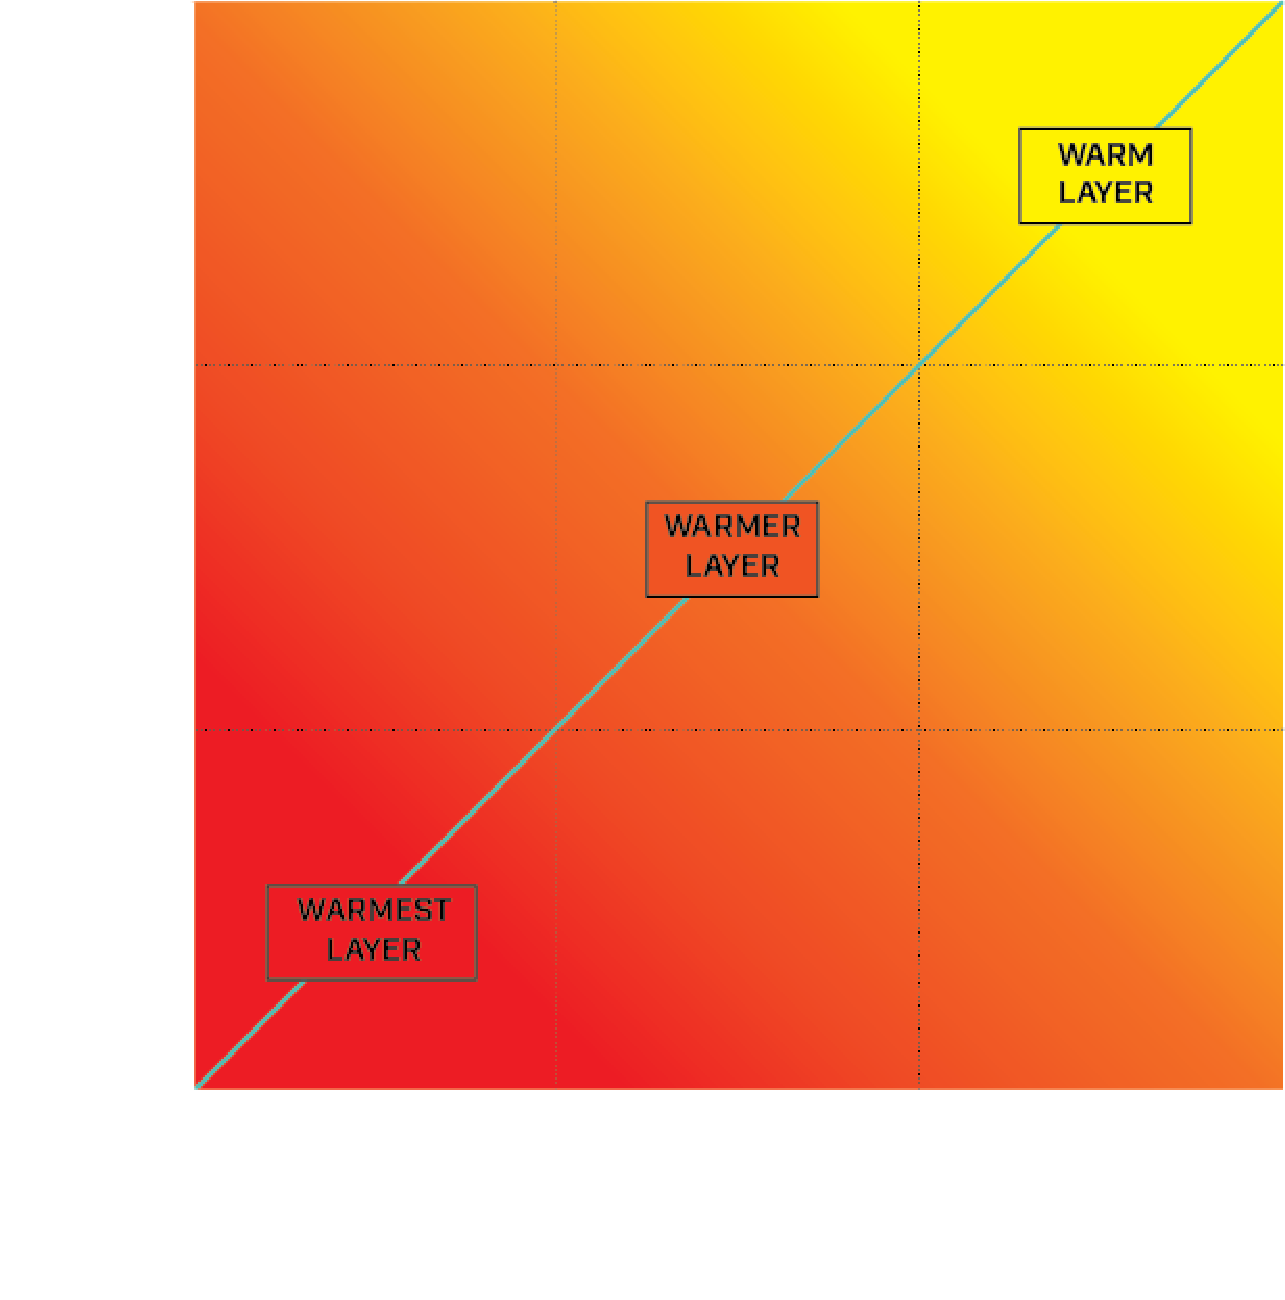 Temperature to activity level graph